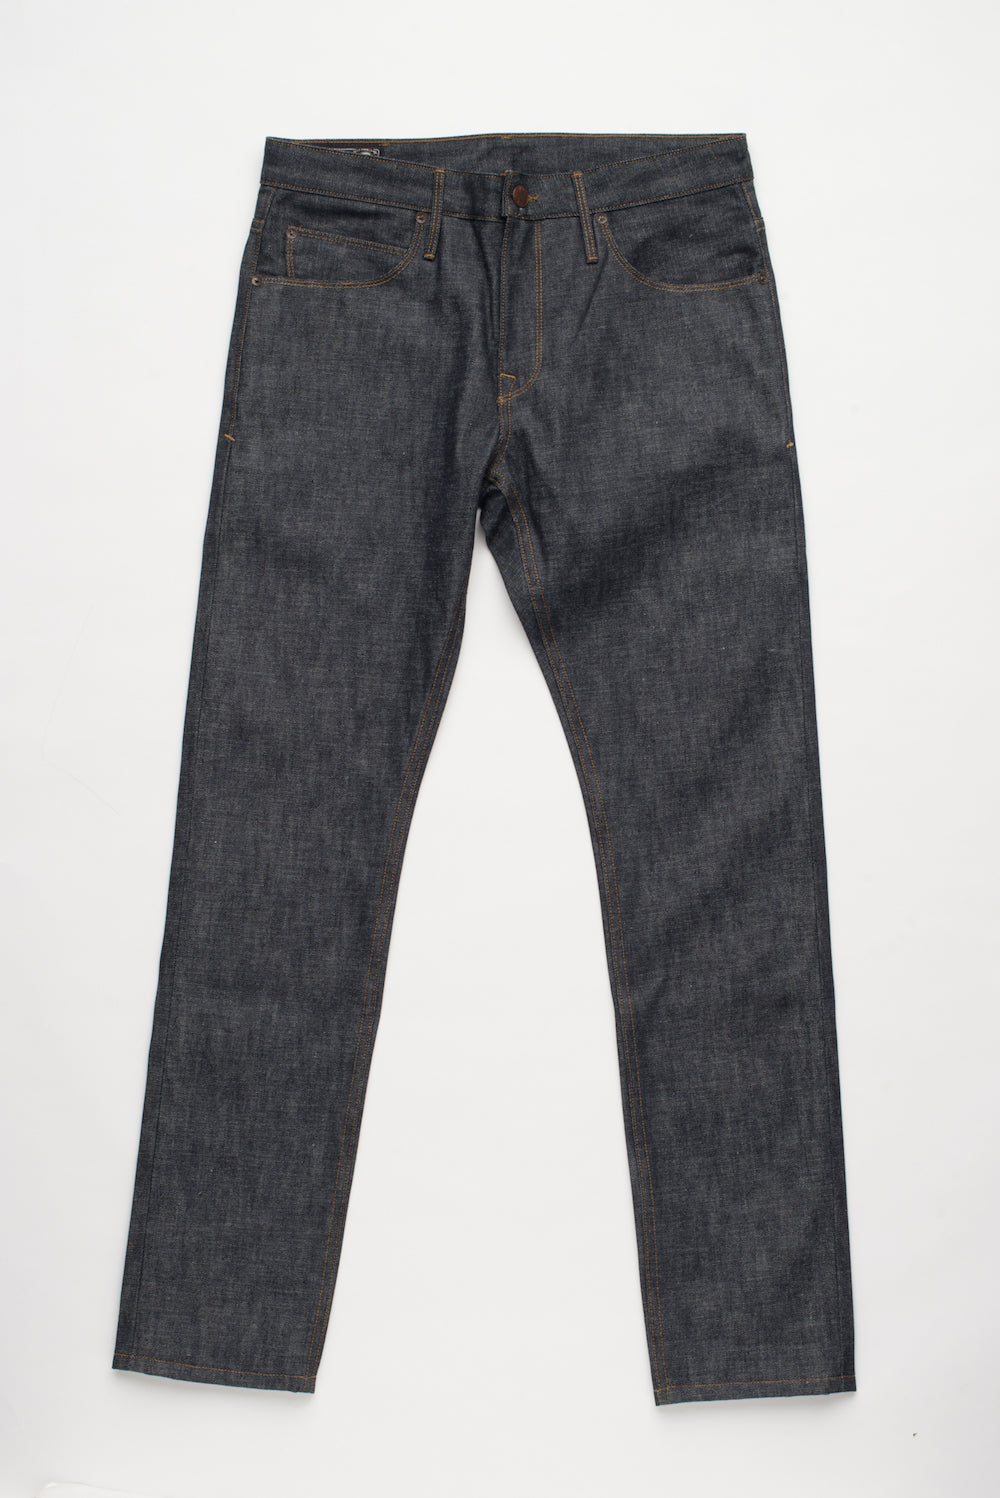 Freenote Cloth | Avila 13 oz Natural Indigo (fs) | $250